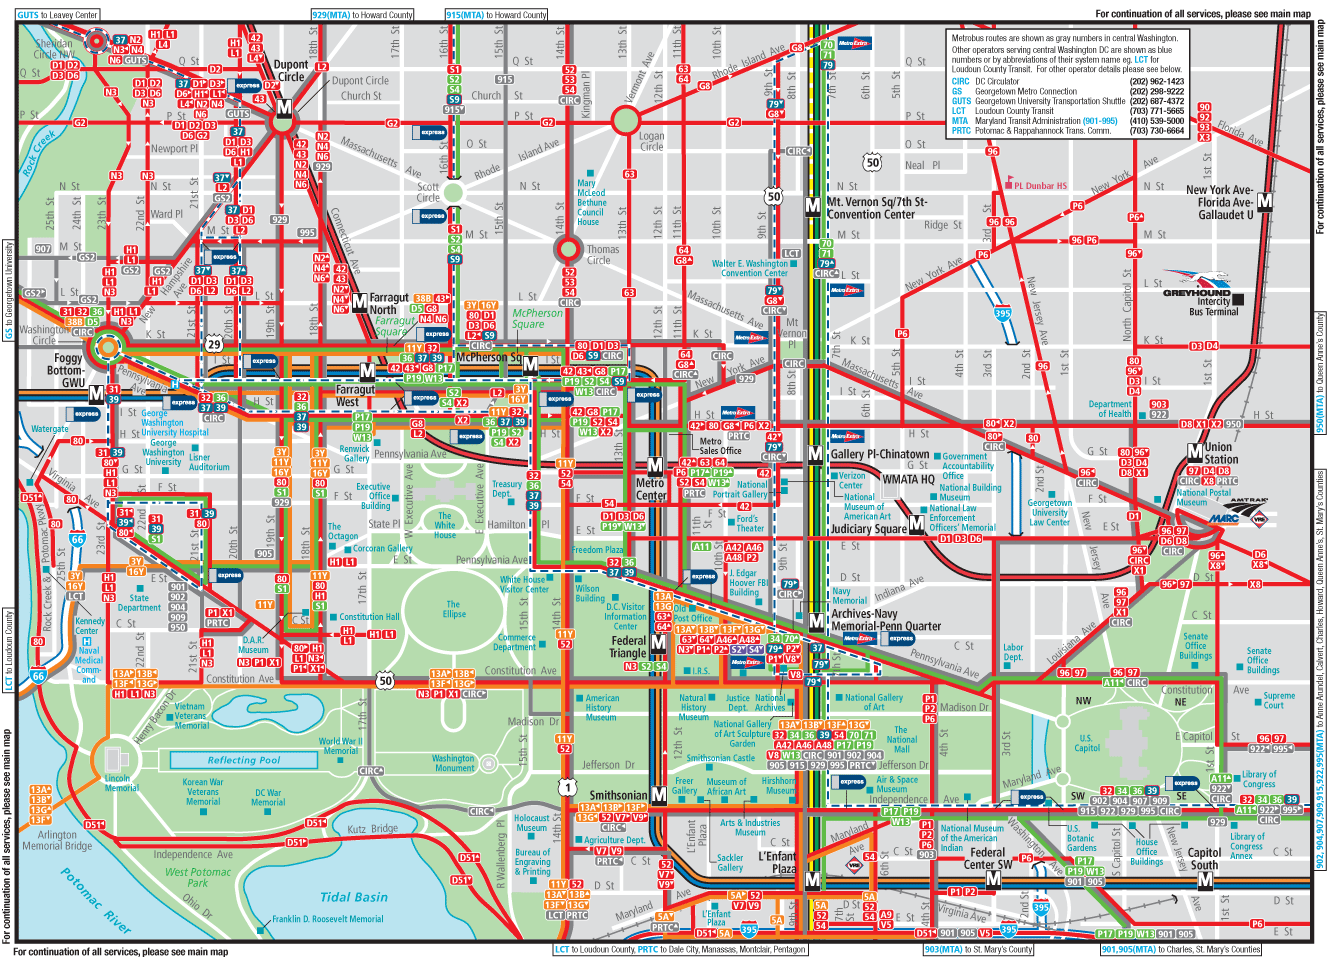 Washington Dc Downtown Metrobus Map City Center Mapsof Net